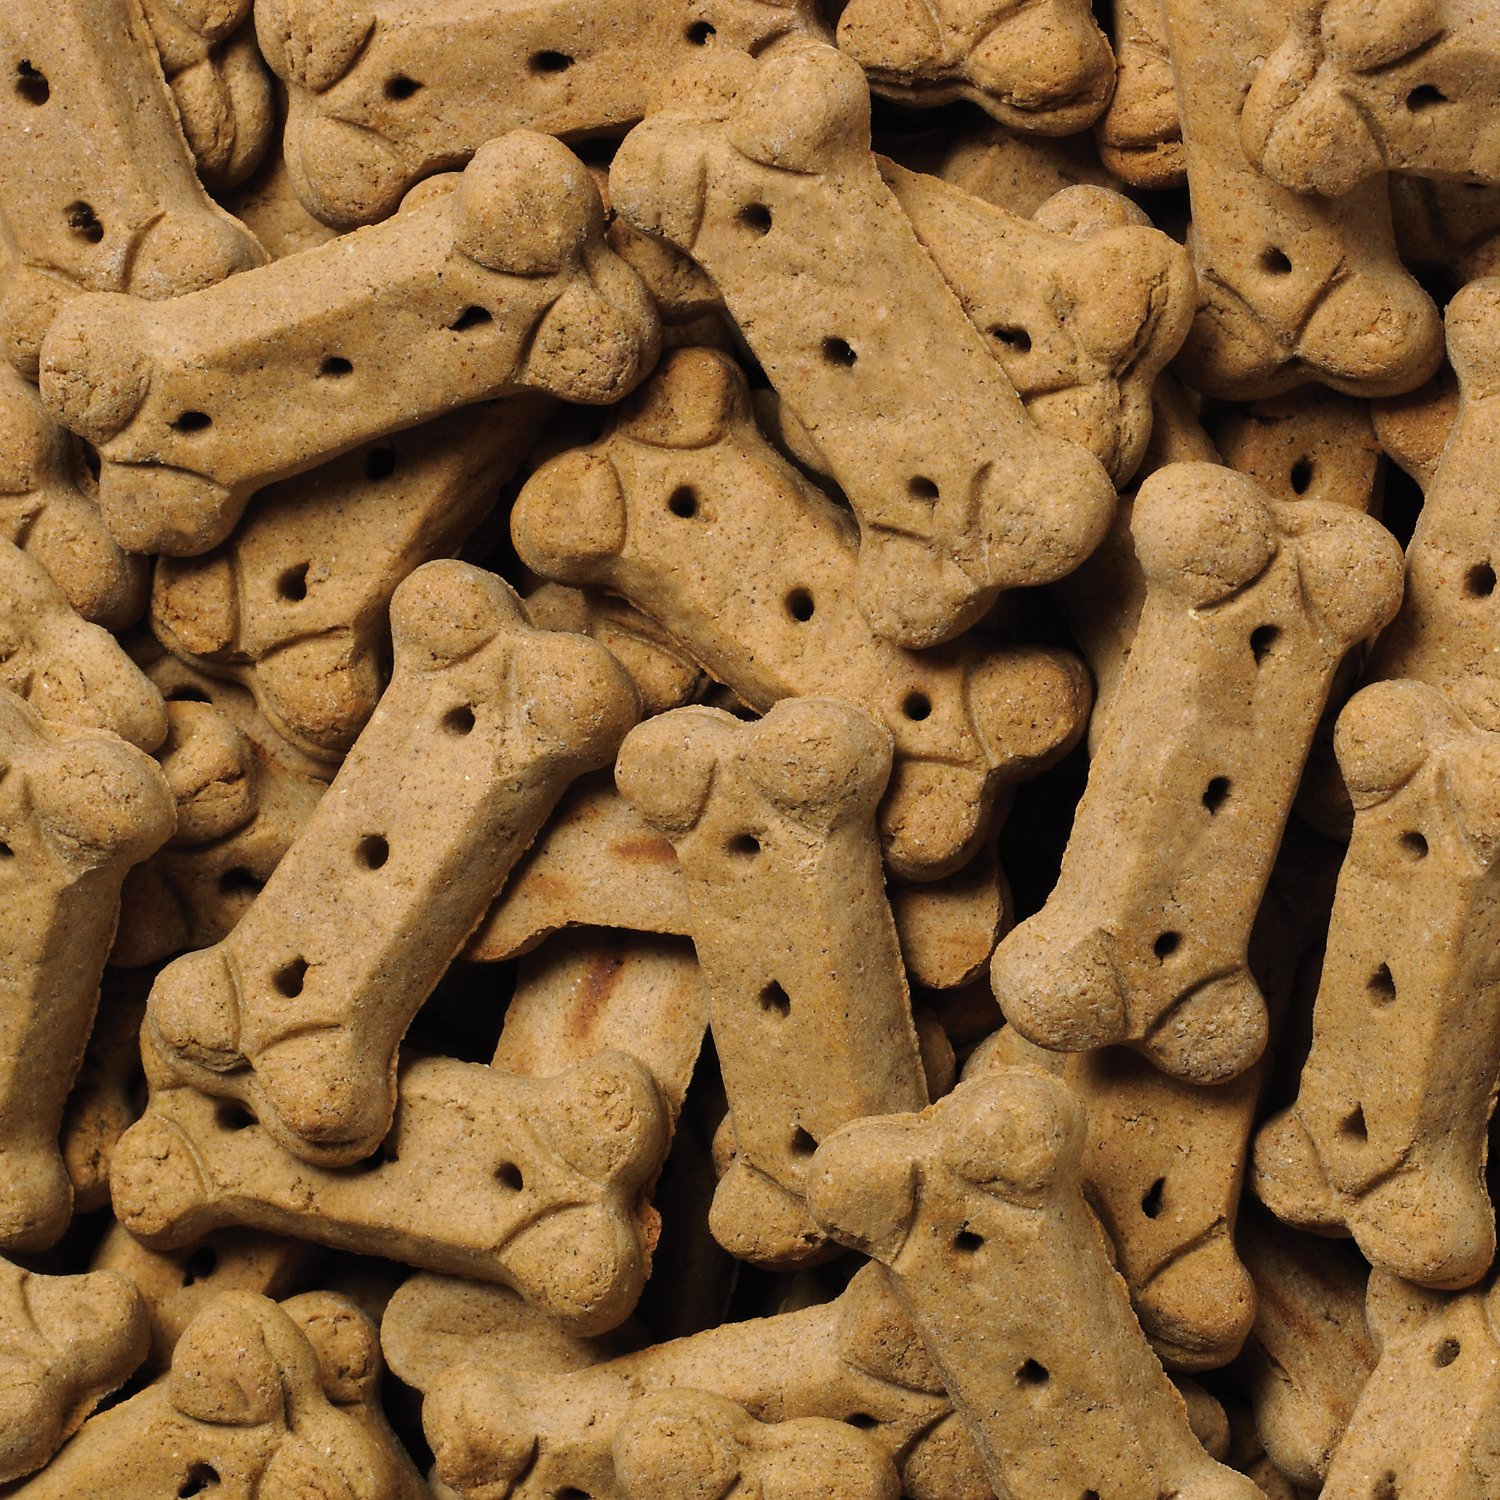 SPORTMiX Wholesomes Grain-Free Medium Golden Biscuit Dog Treats Image